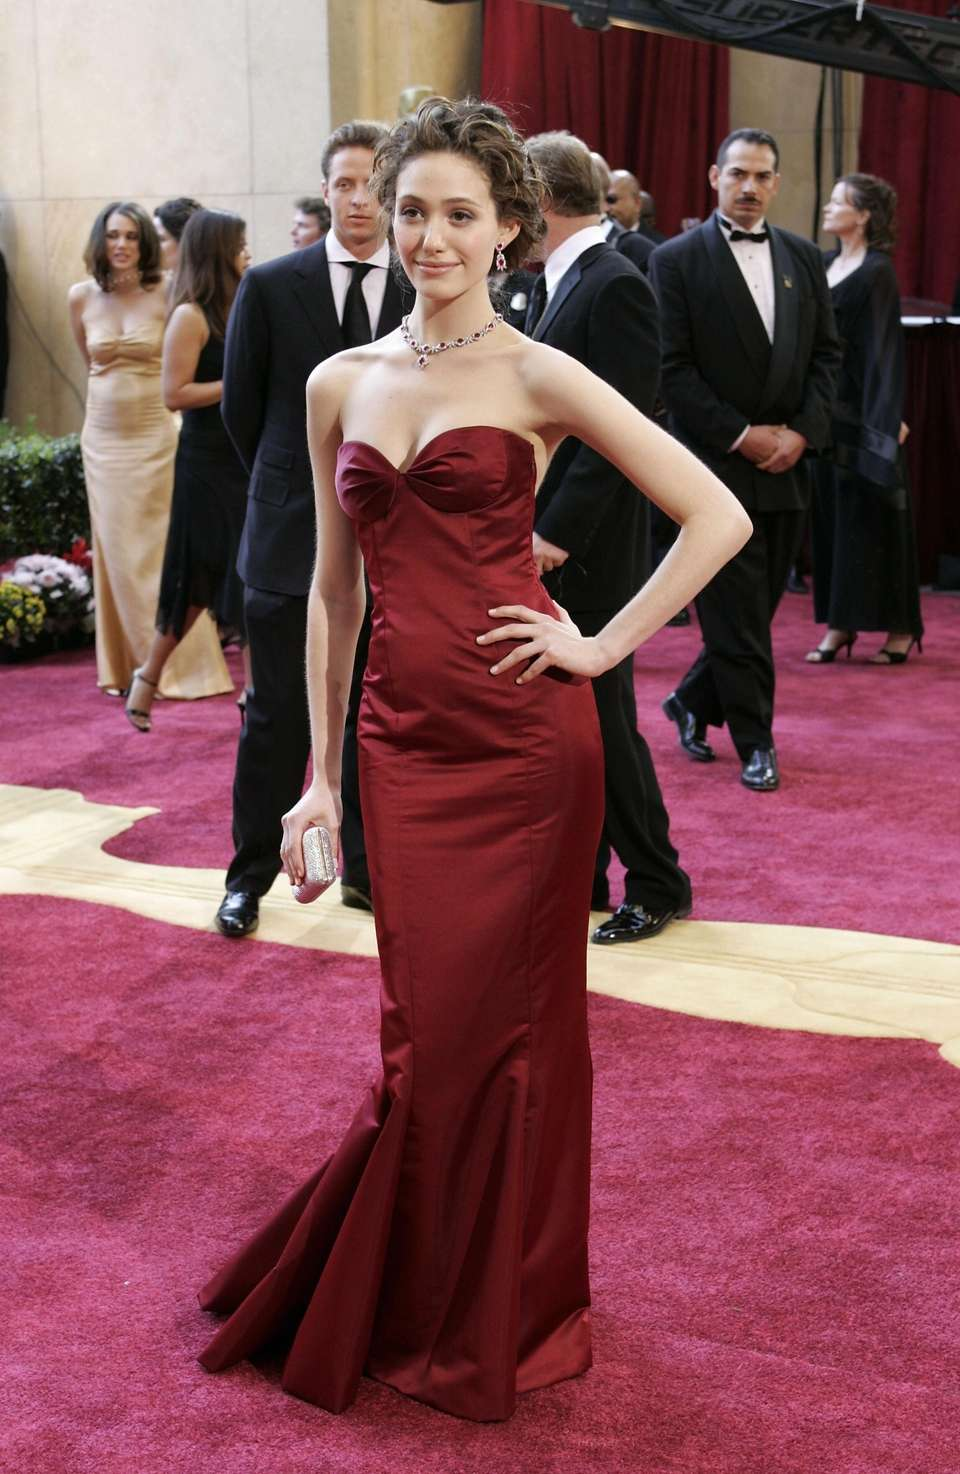 Emmy Rossum arrives at the 77th Academy Awards